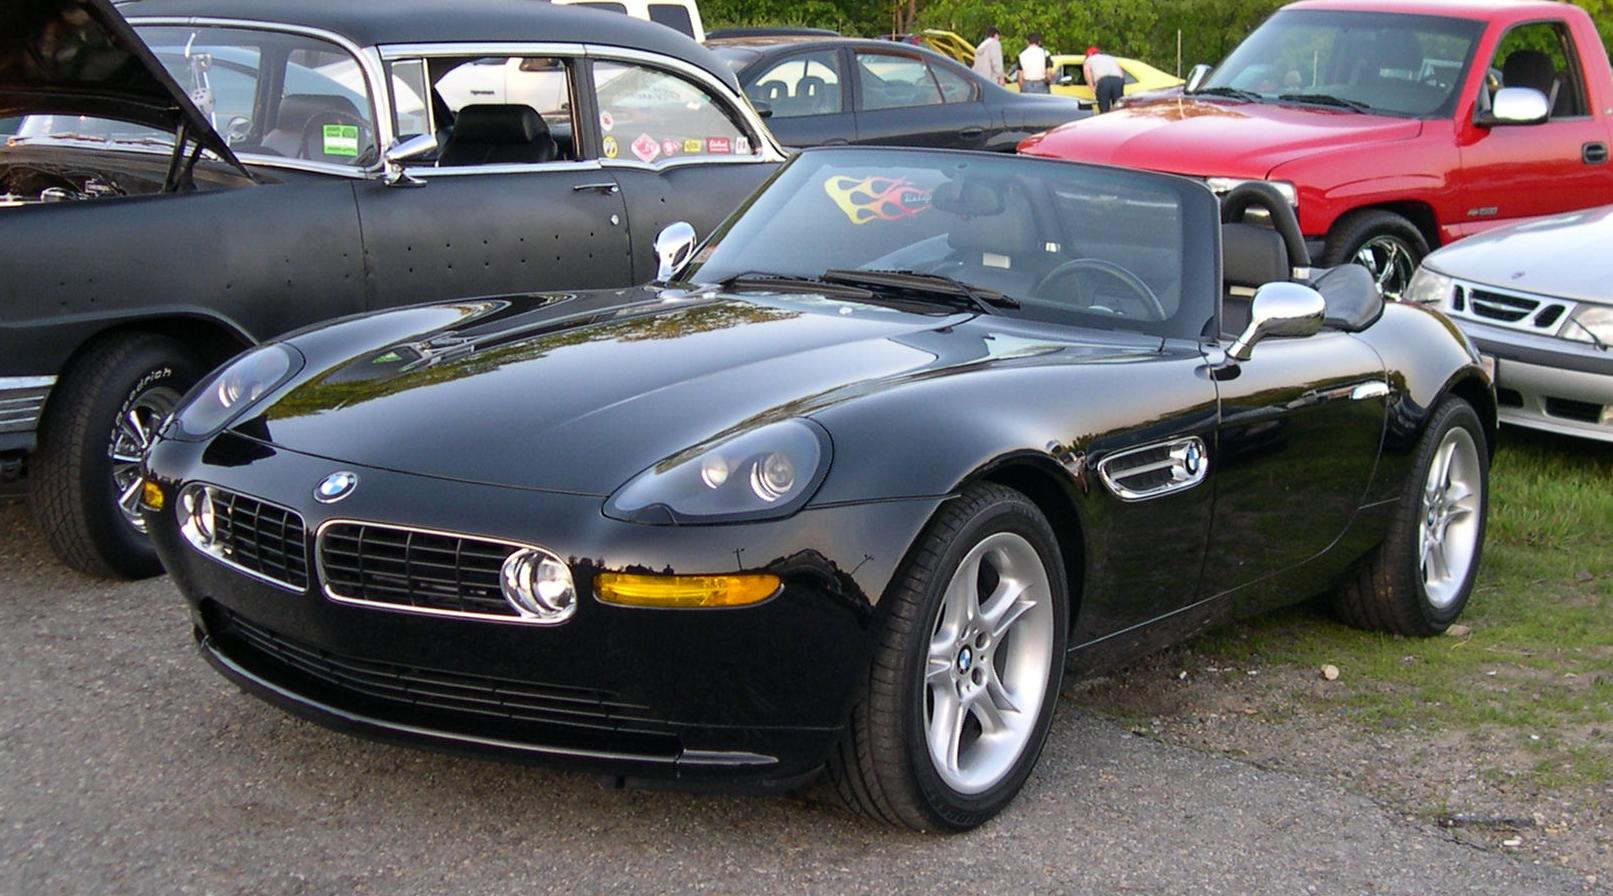 File:BMW Z8.jpg - Wikimedia Commons